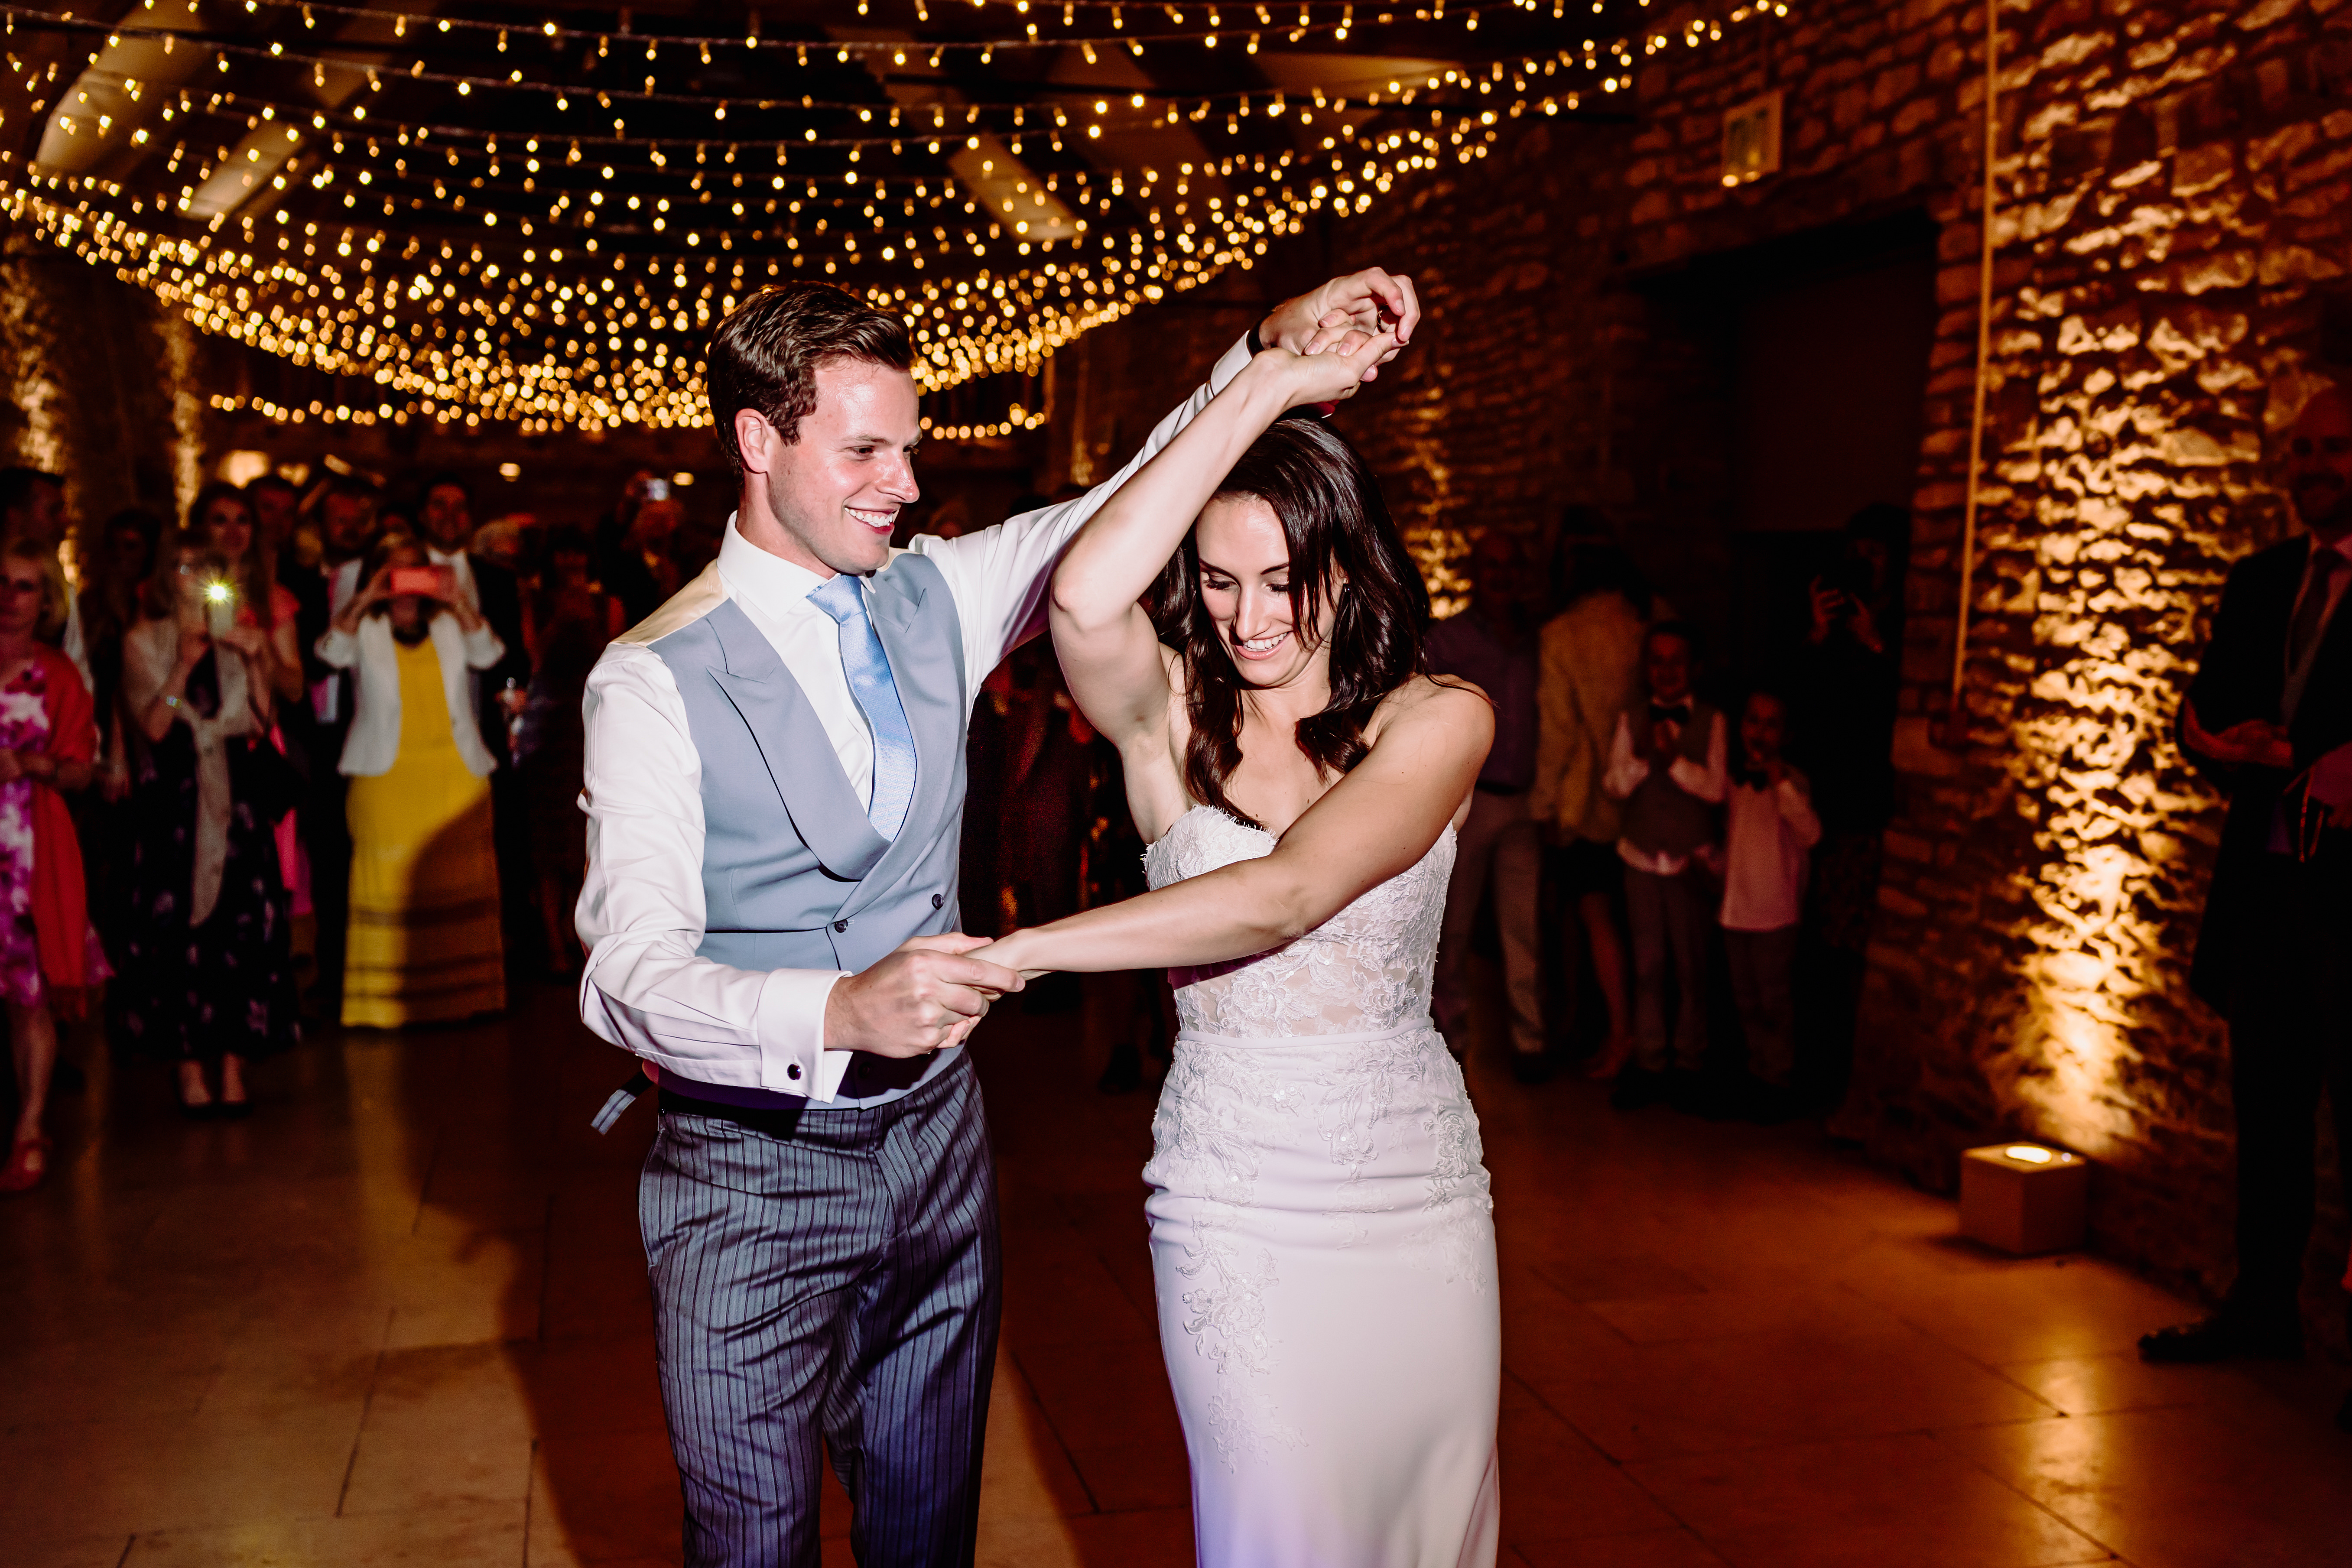 a first dance with the bride